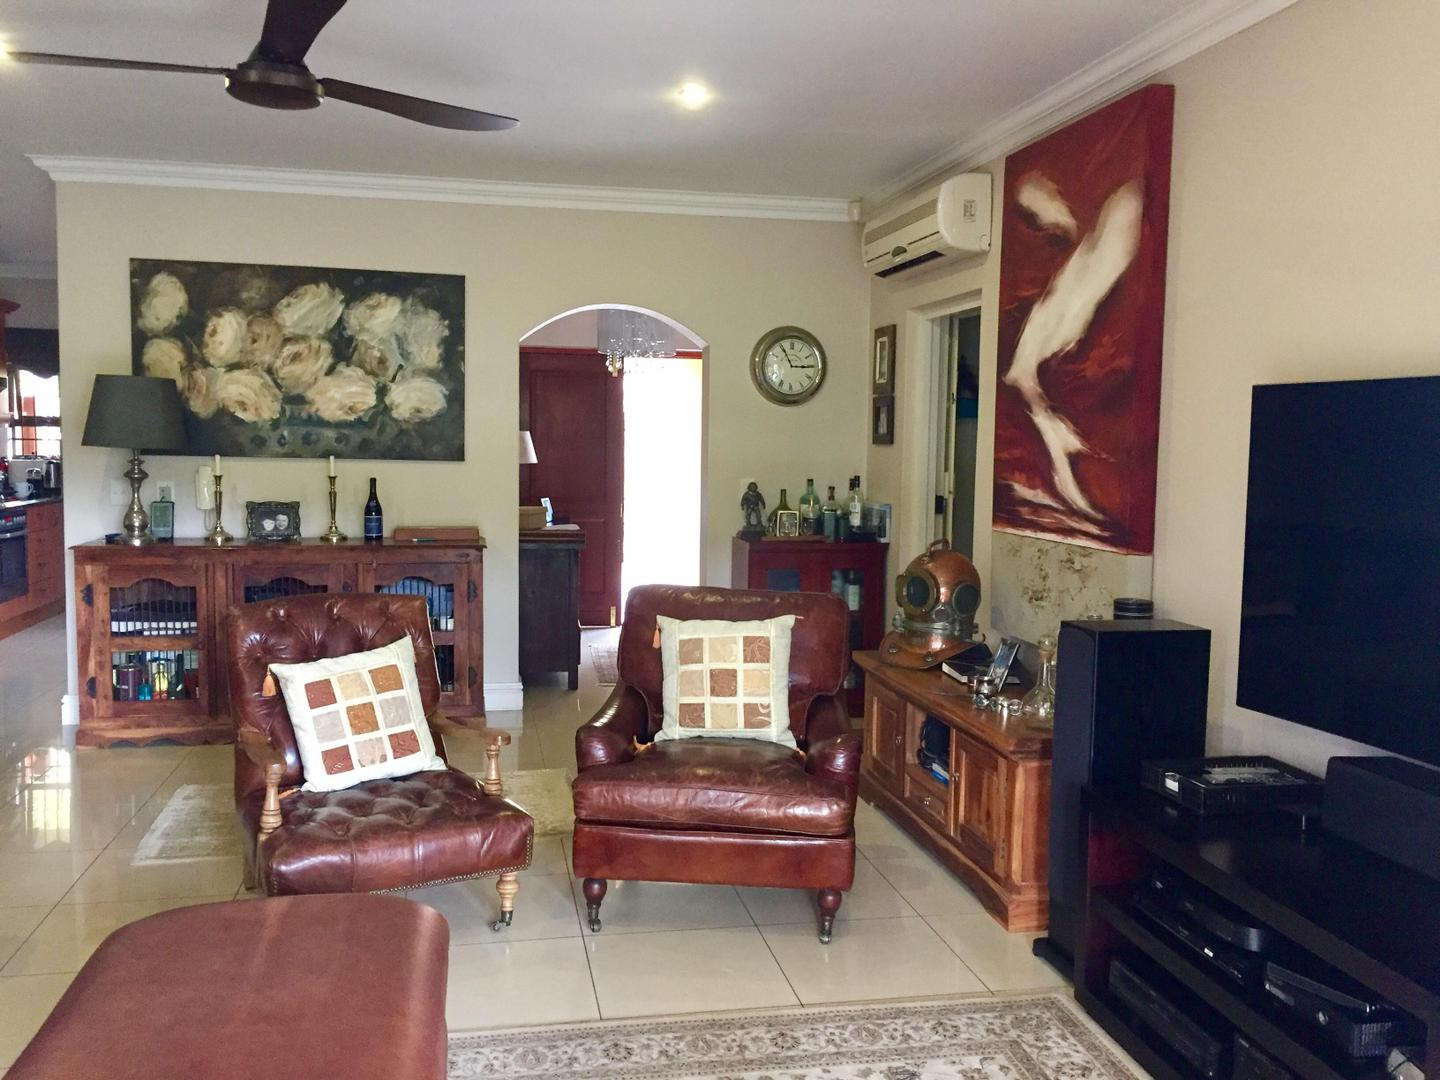 3 Bedroom House for sale in La Lucia 1801093 : photo#1